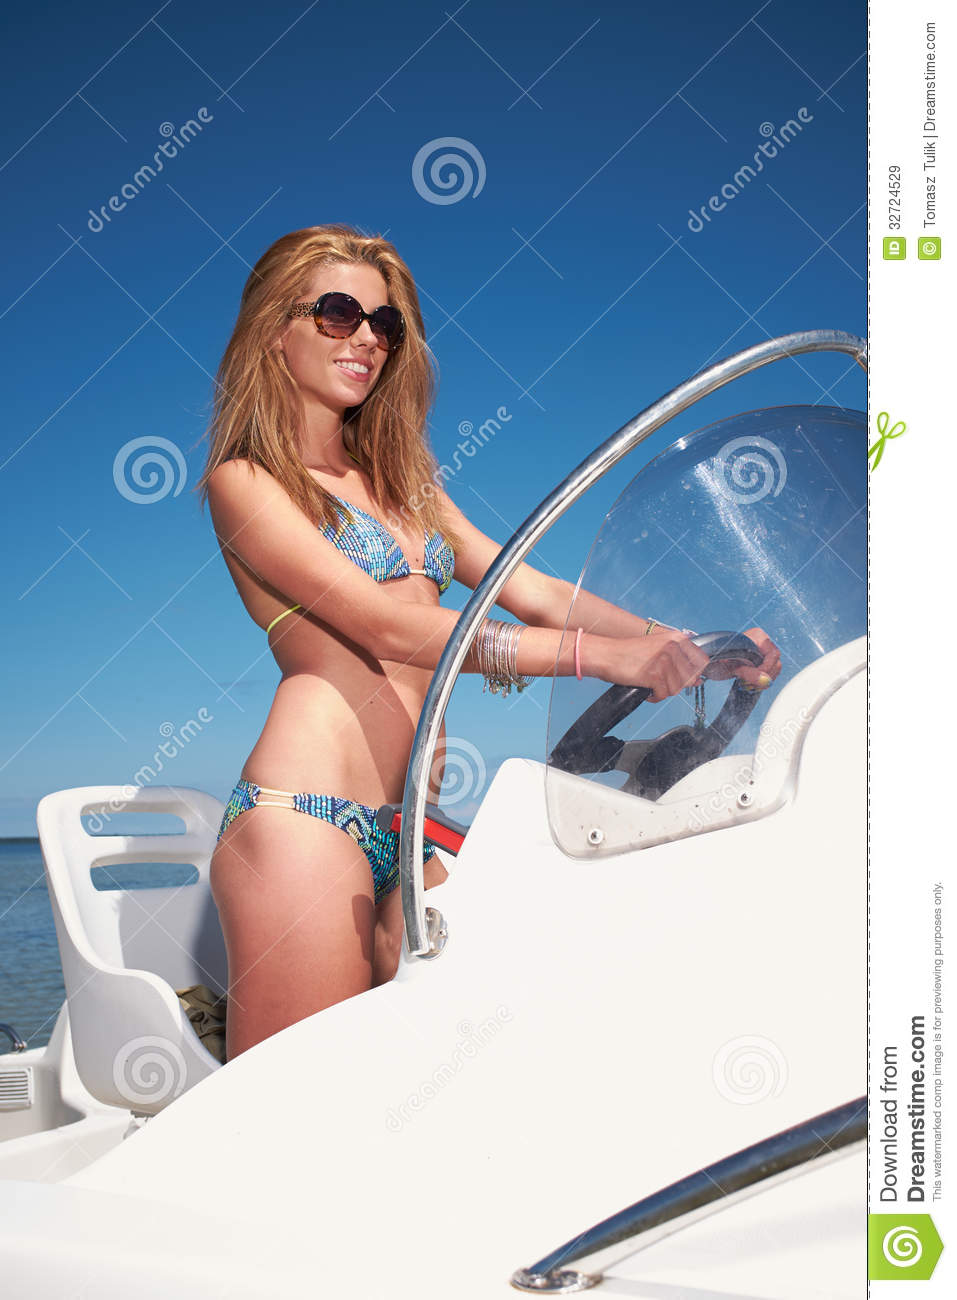 Woman Driving A Motor Boat Royalty Free Stock Images - Image: 32724529